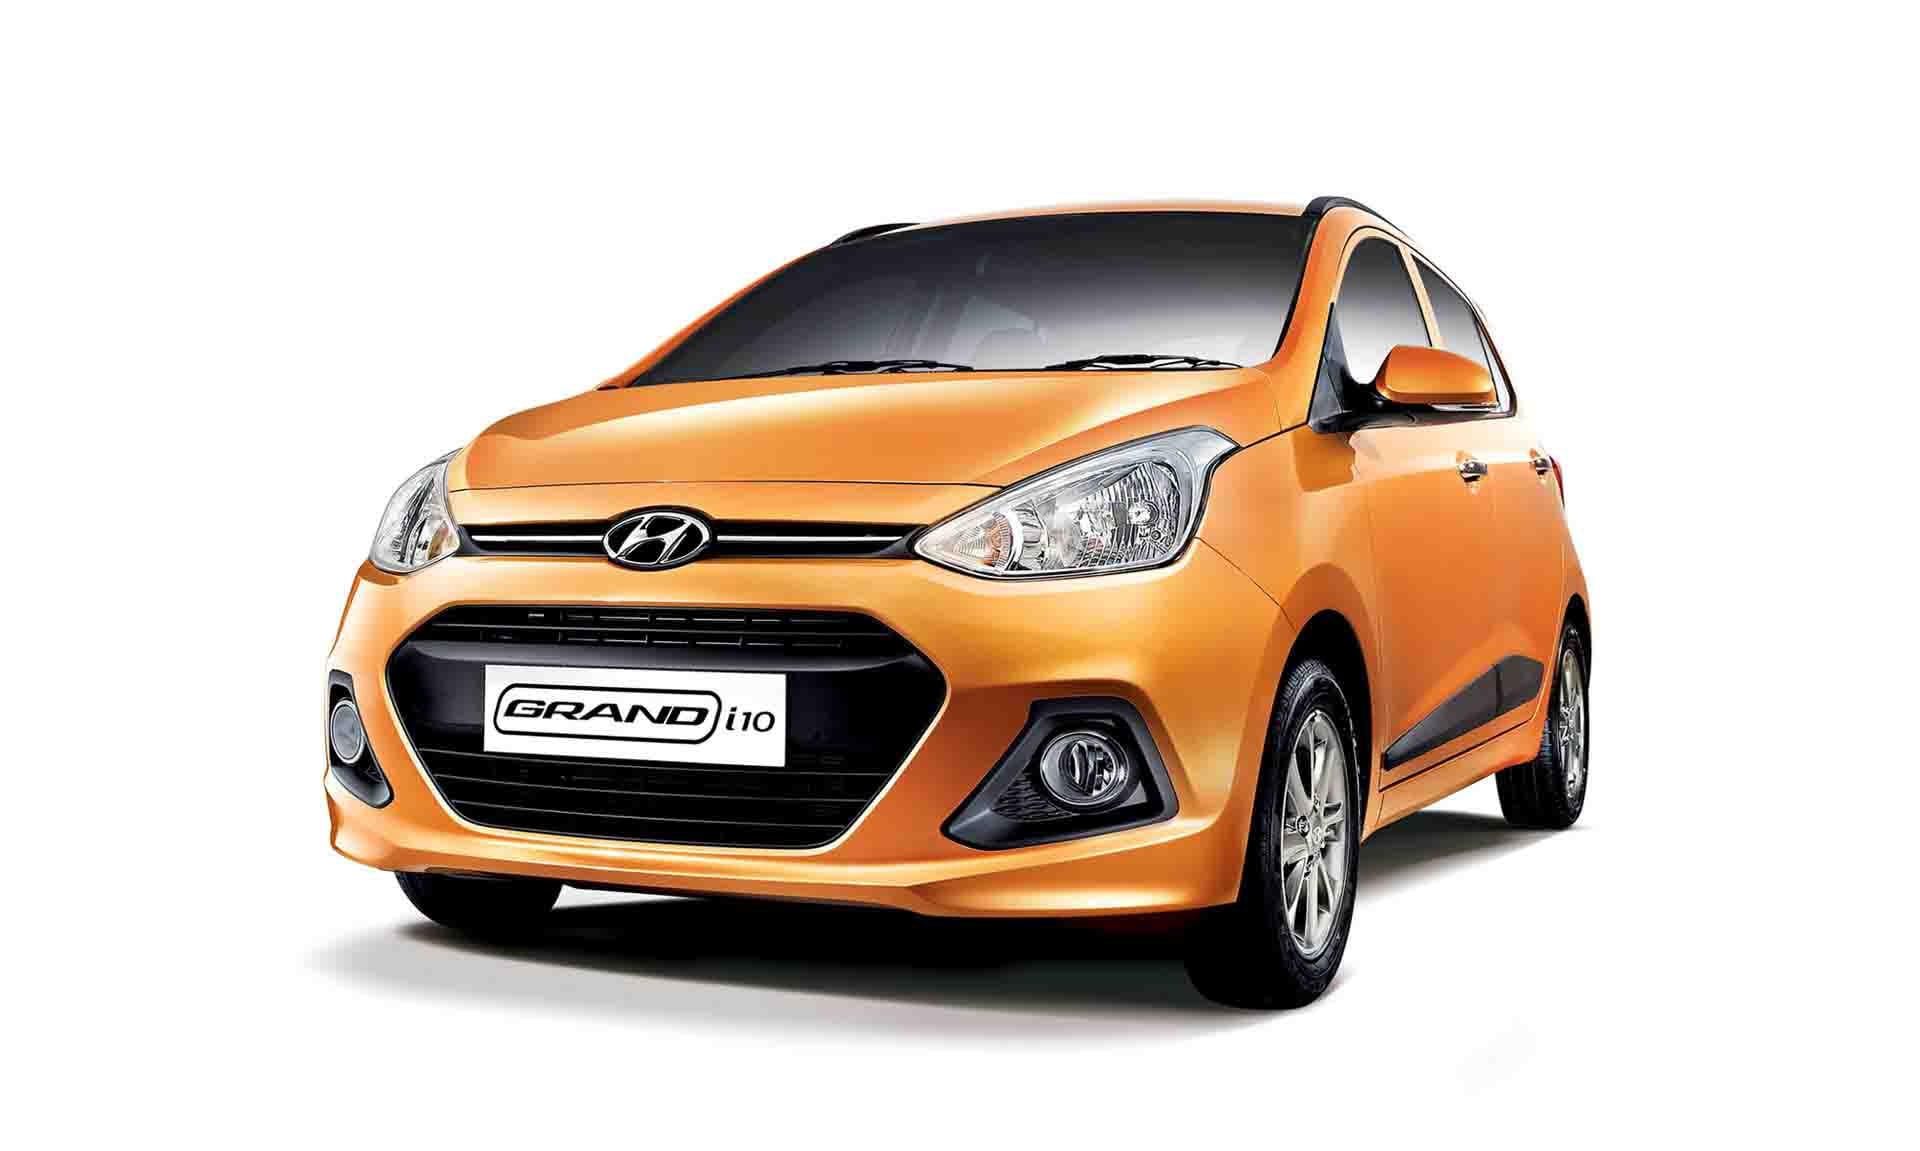 Hyundai Grand I10 India Price Review Images Hyundai Cars